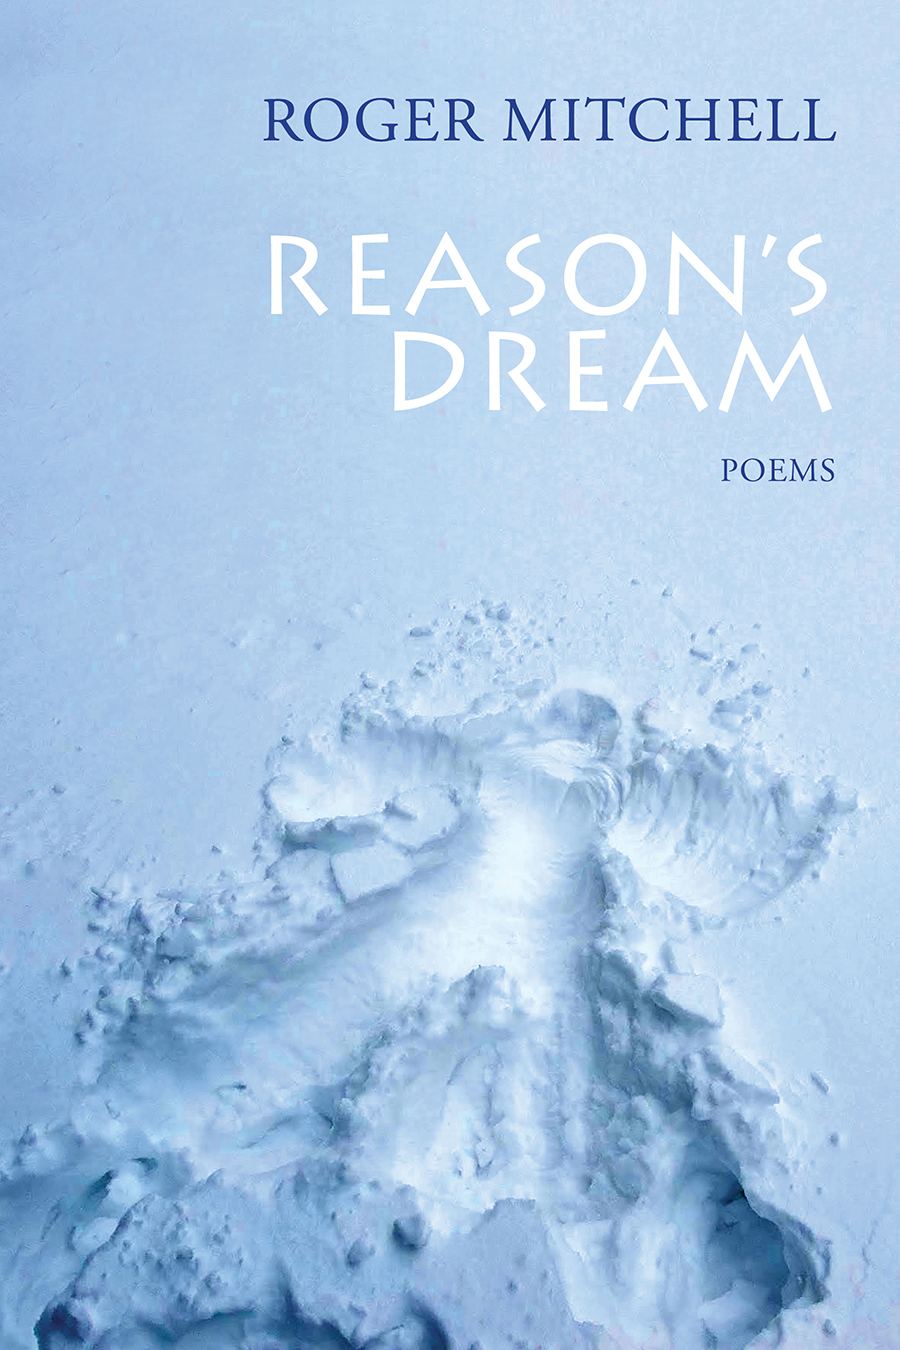 Reason's Dream